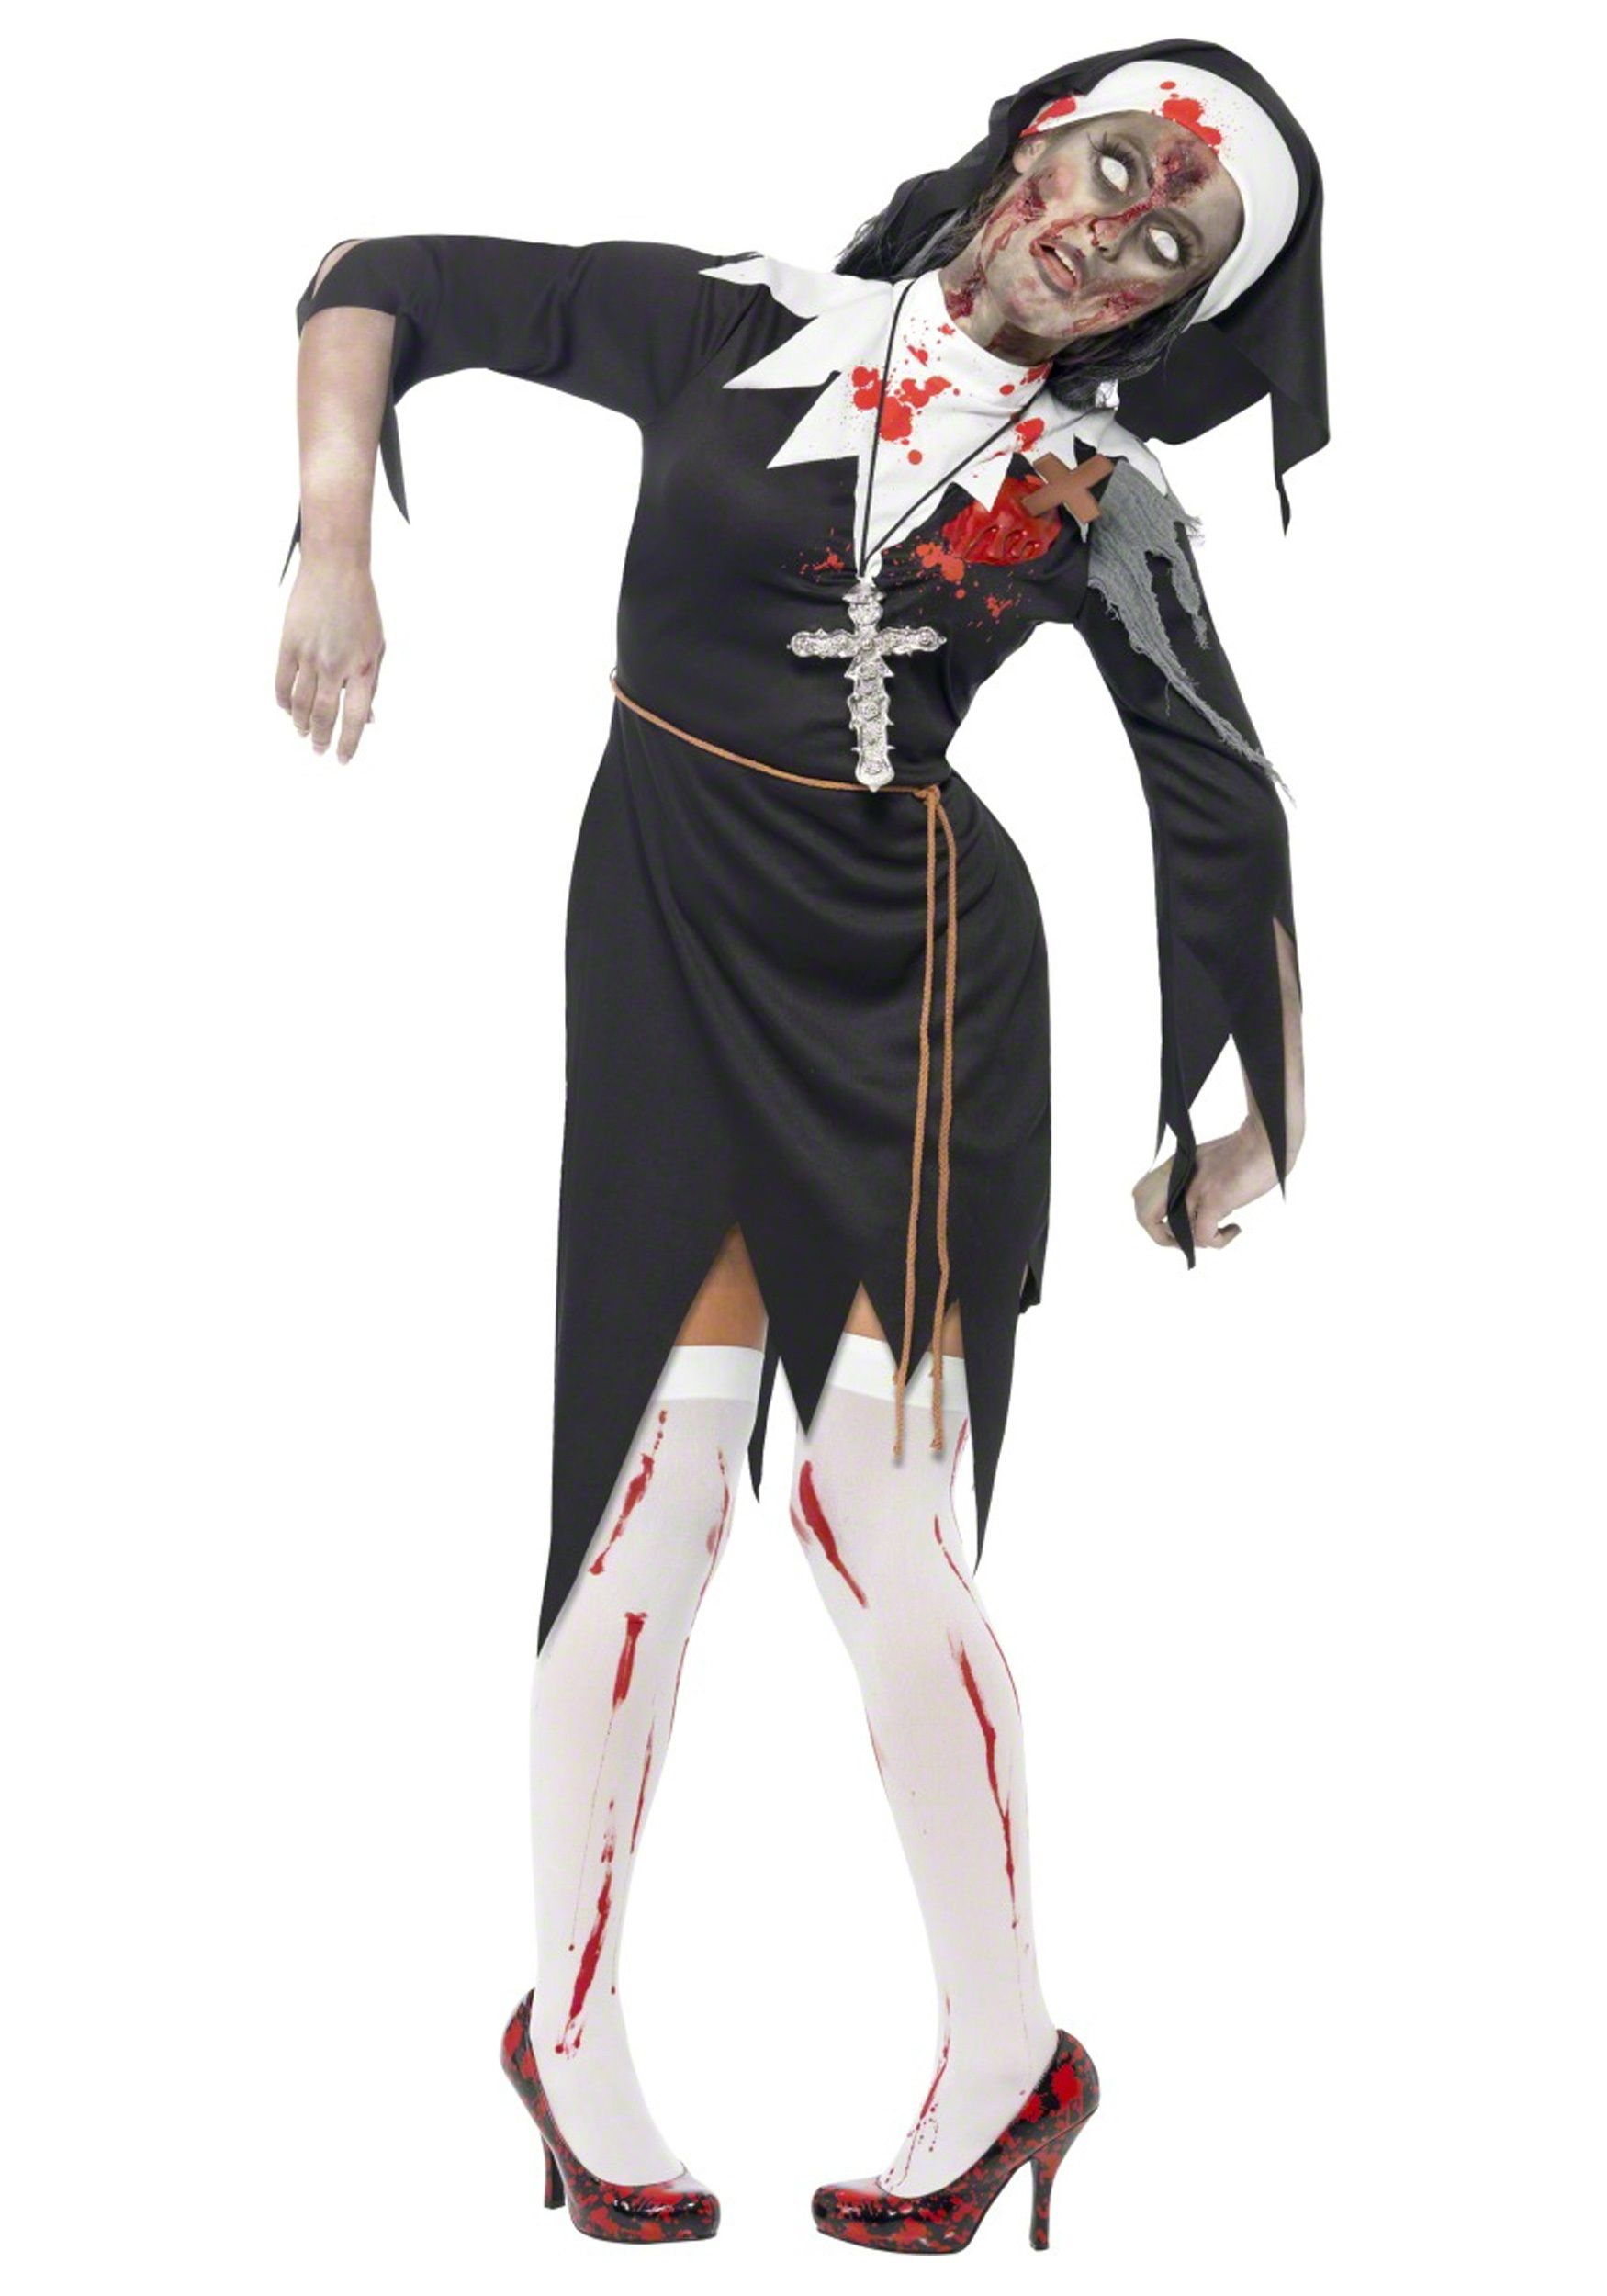 Scary Halloween Costumes Ideas For Adults.Scary Halloween Costumes For Women Halloween Costume Ideas Classic